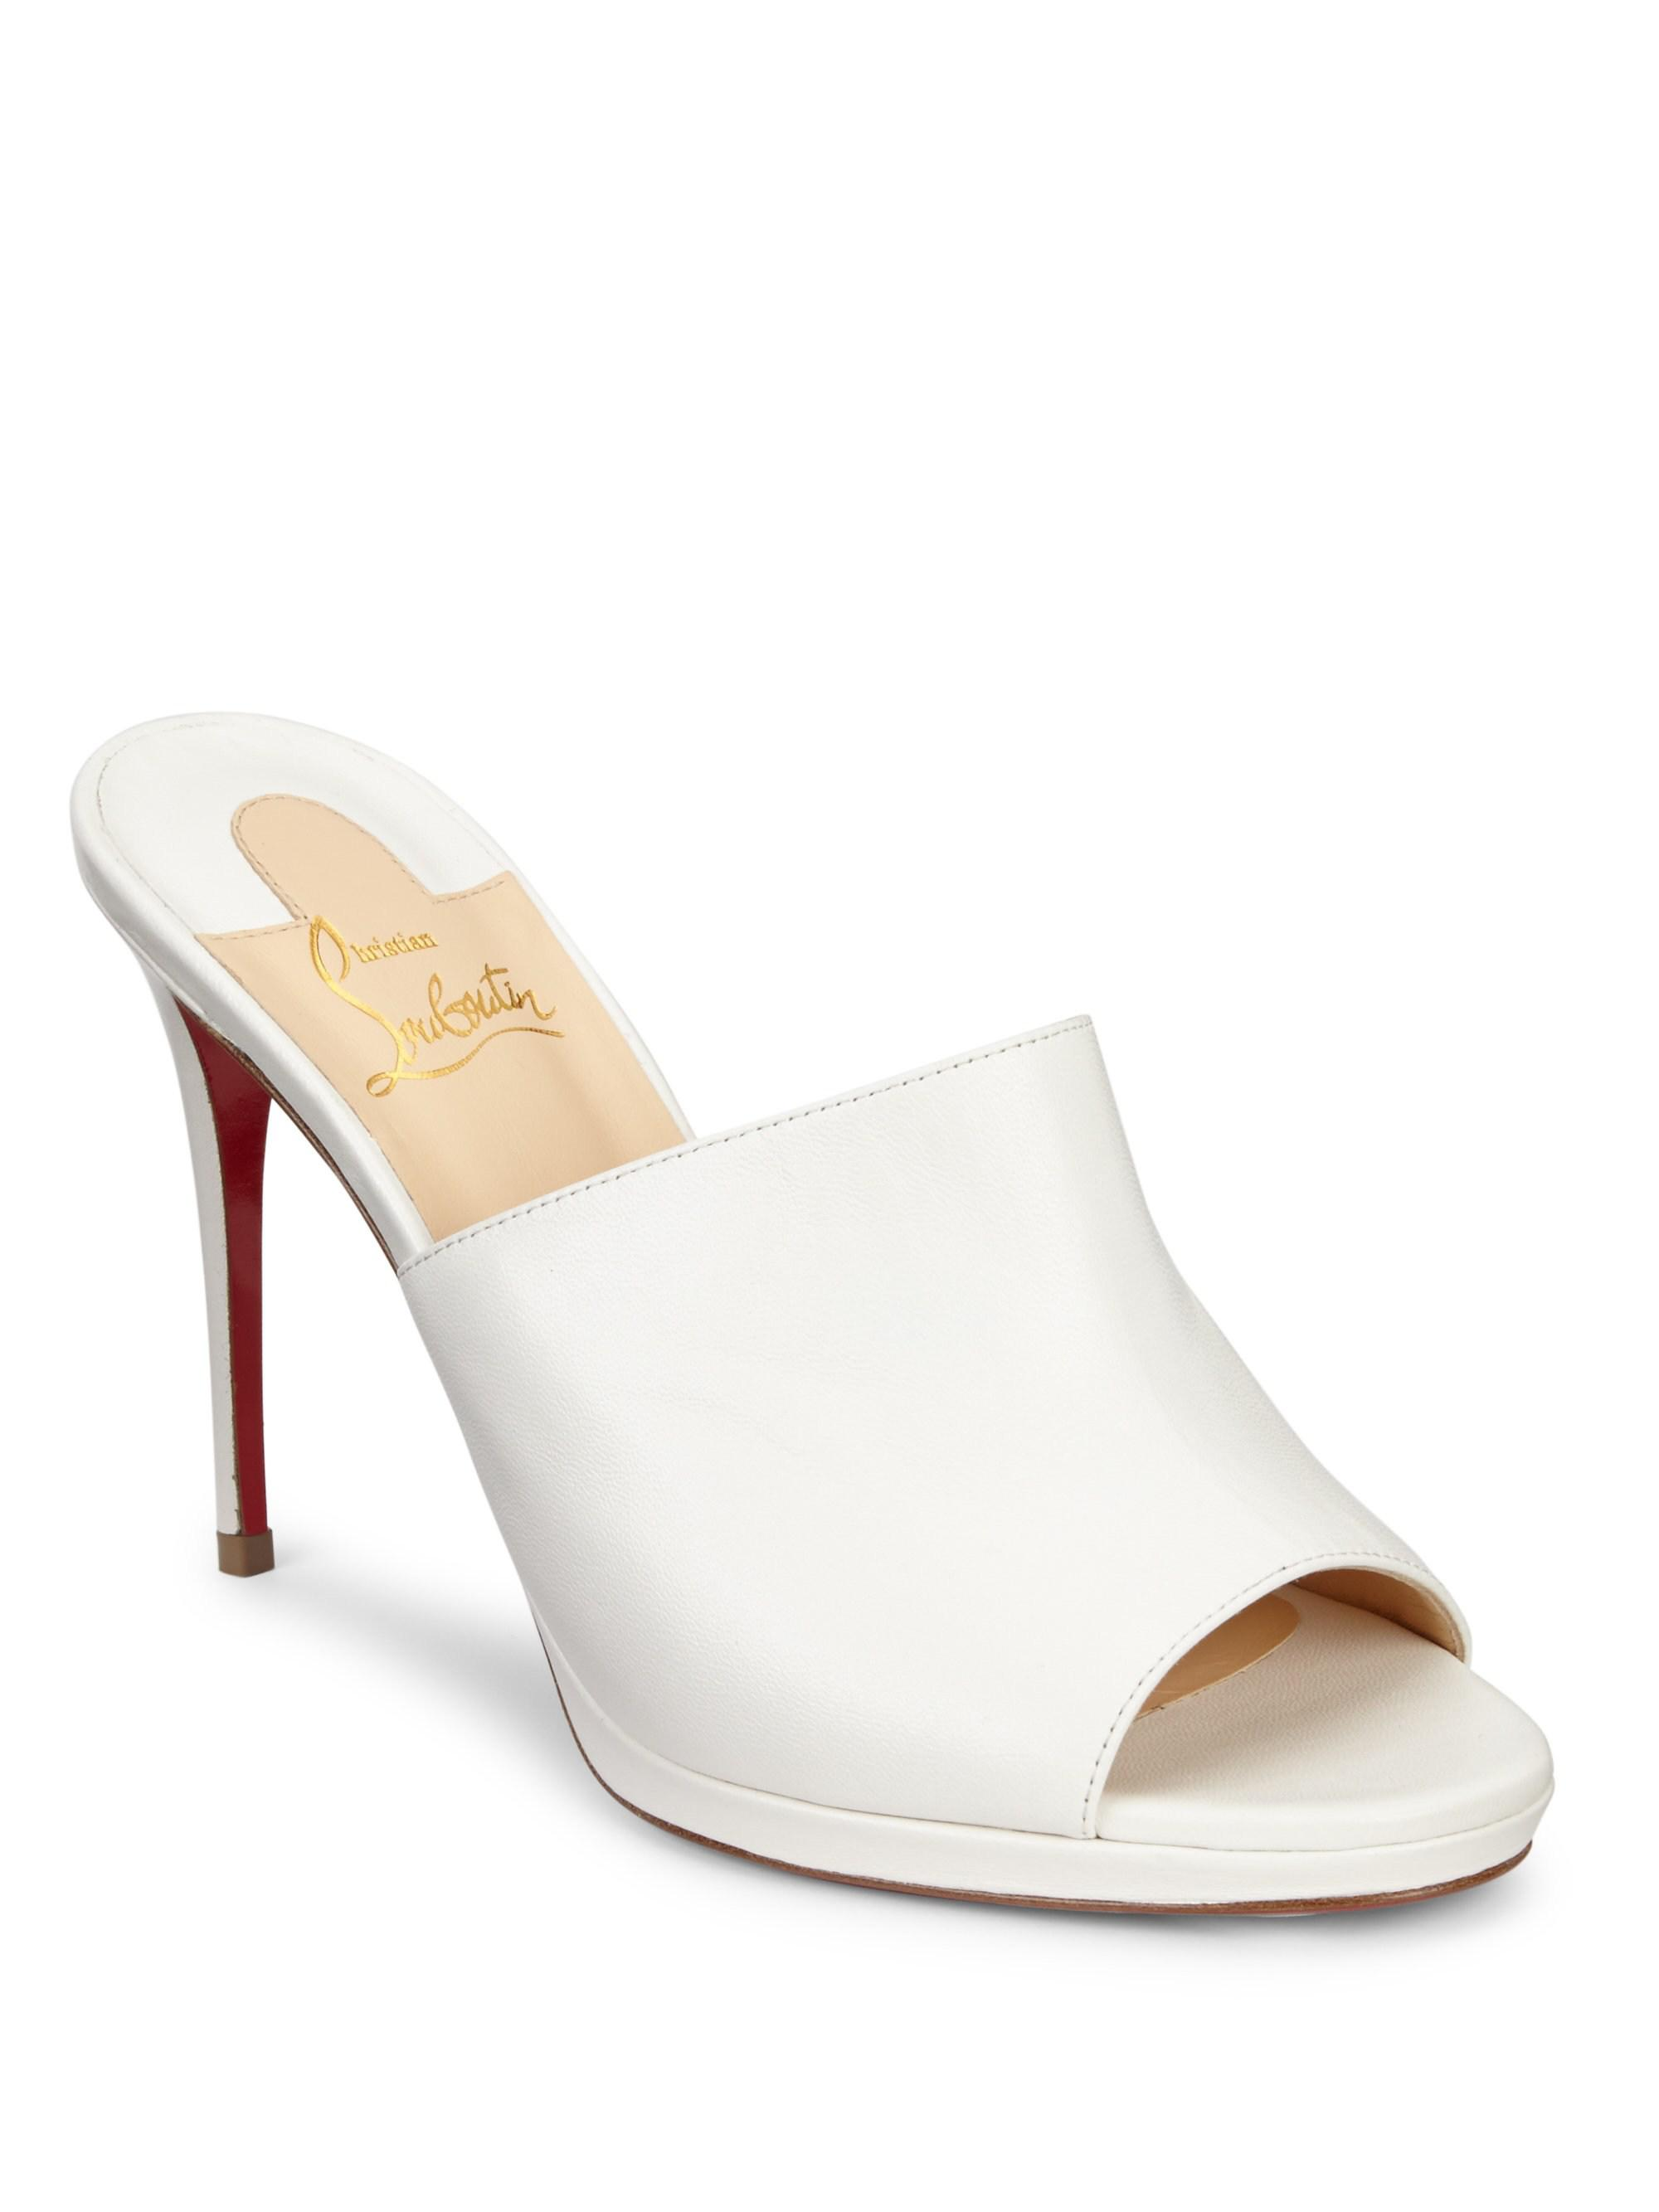 dcb0fac7f103 Lyst - Christian Louboutin Pigamule 100 Leather Mules in White